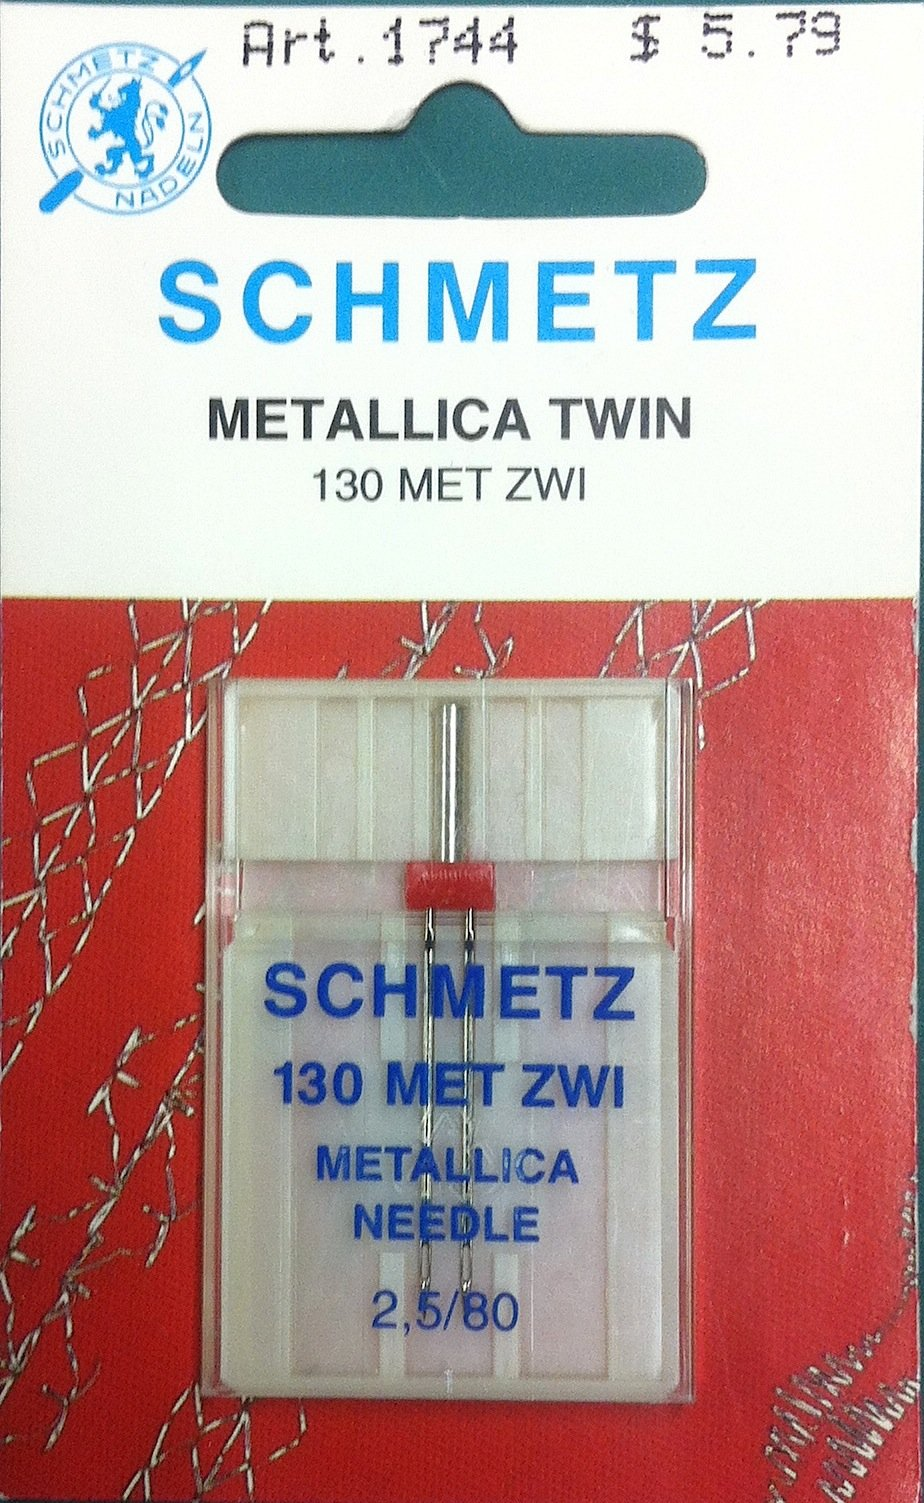 Schmetz Metallica Twin Needle 2.5/80